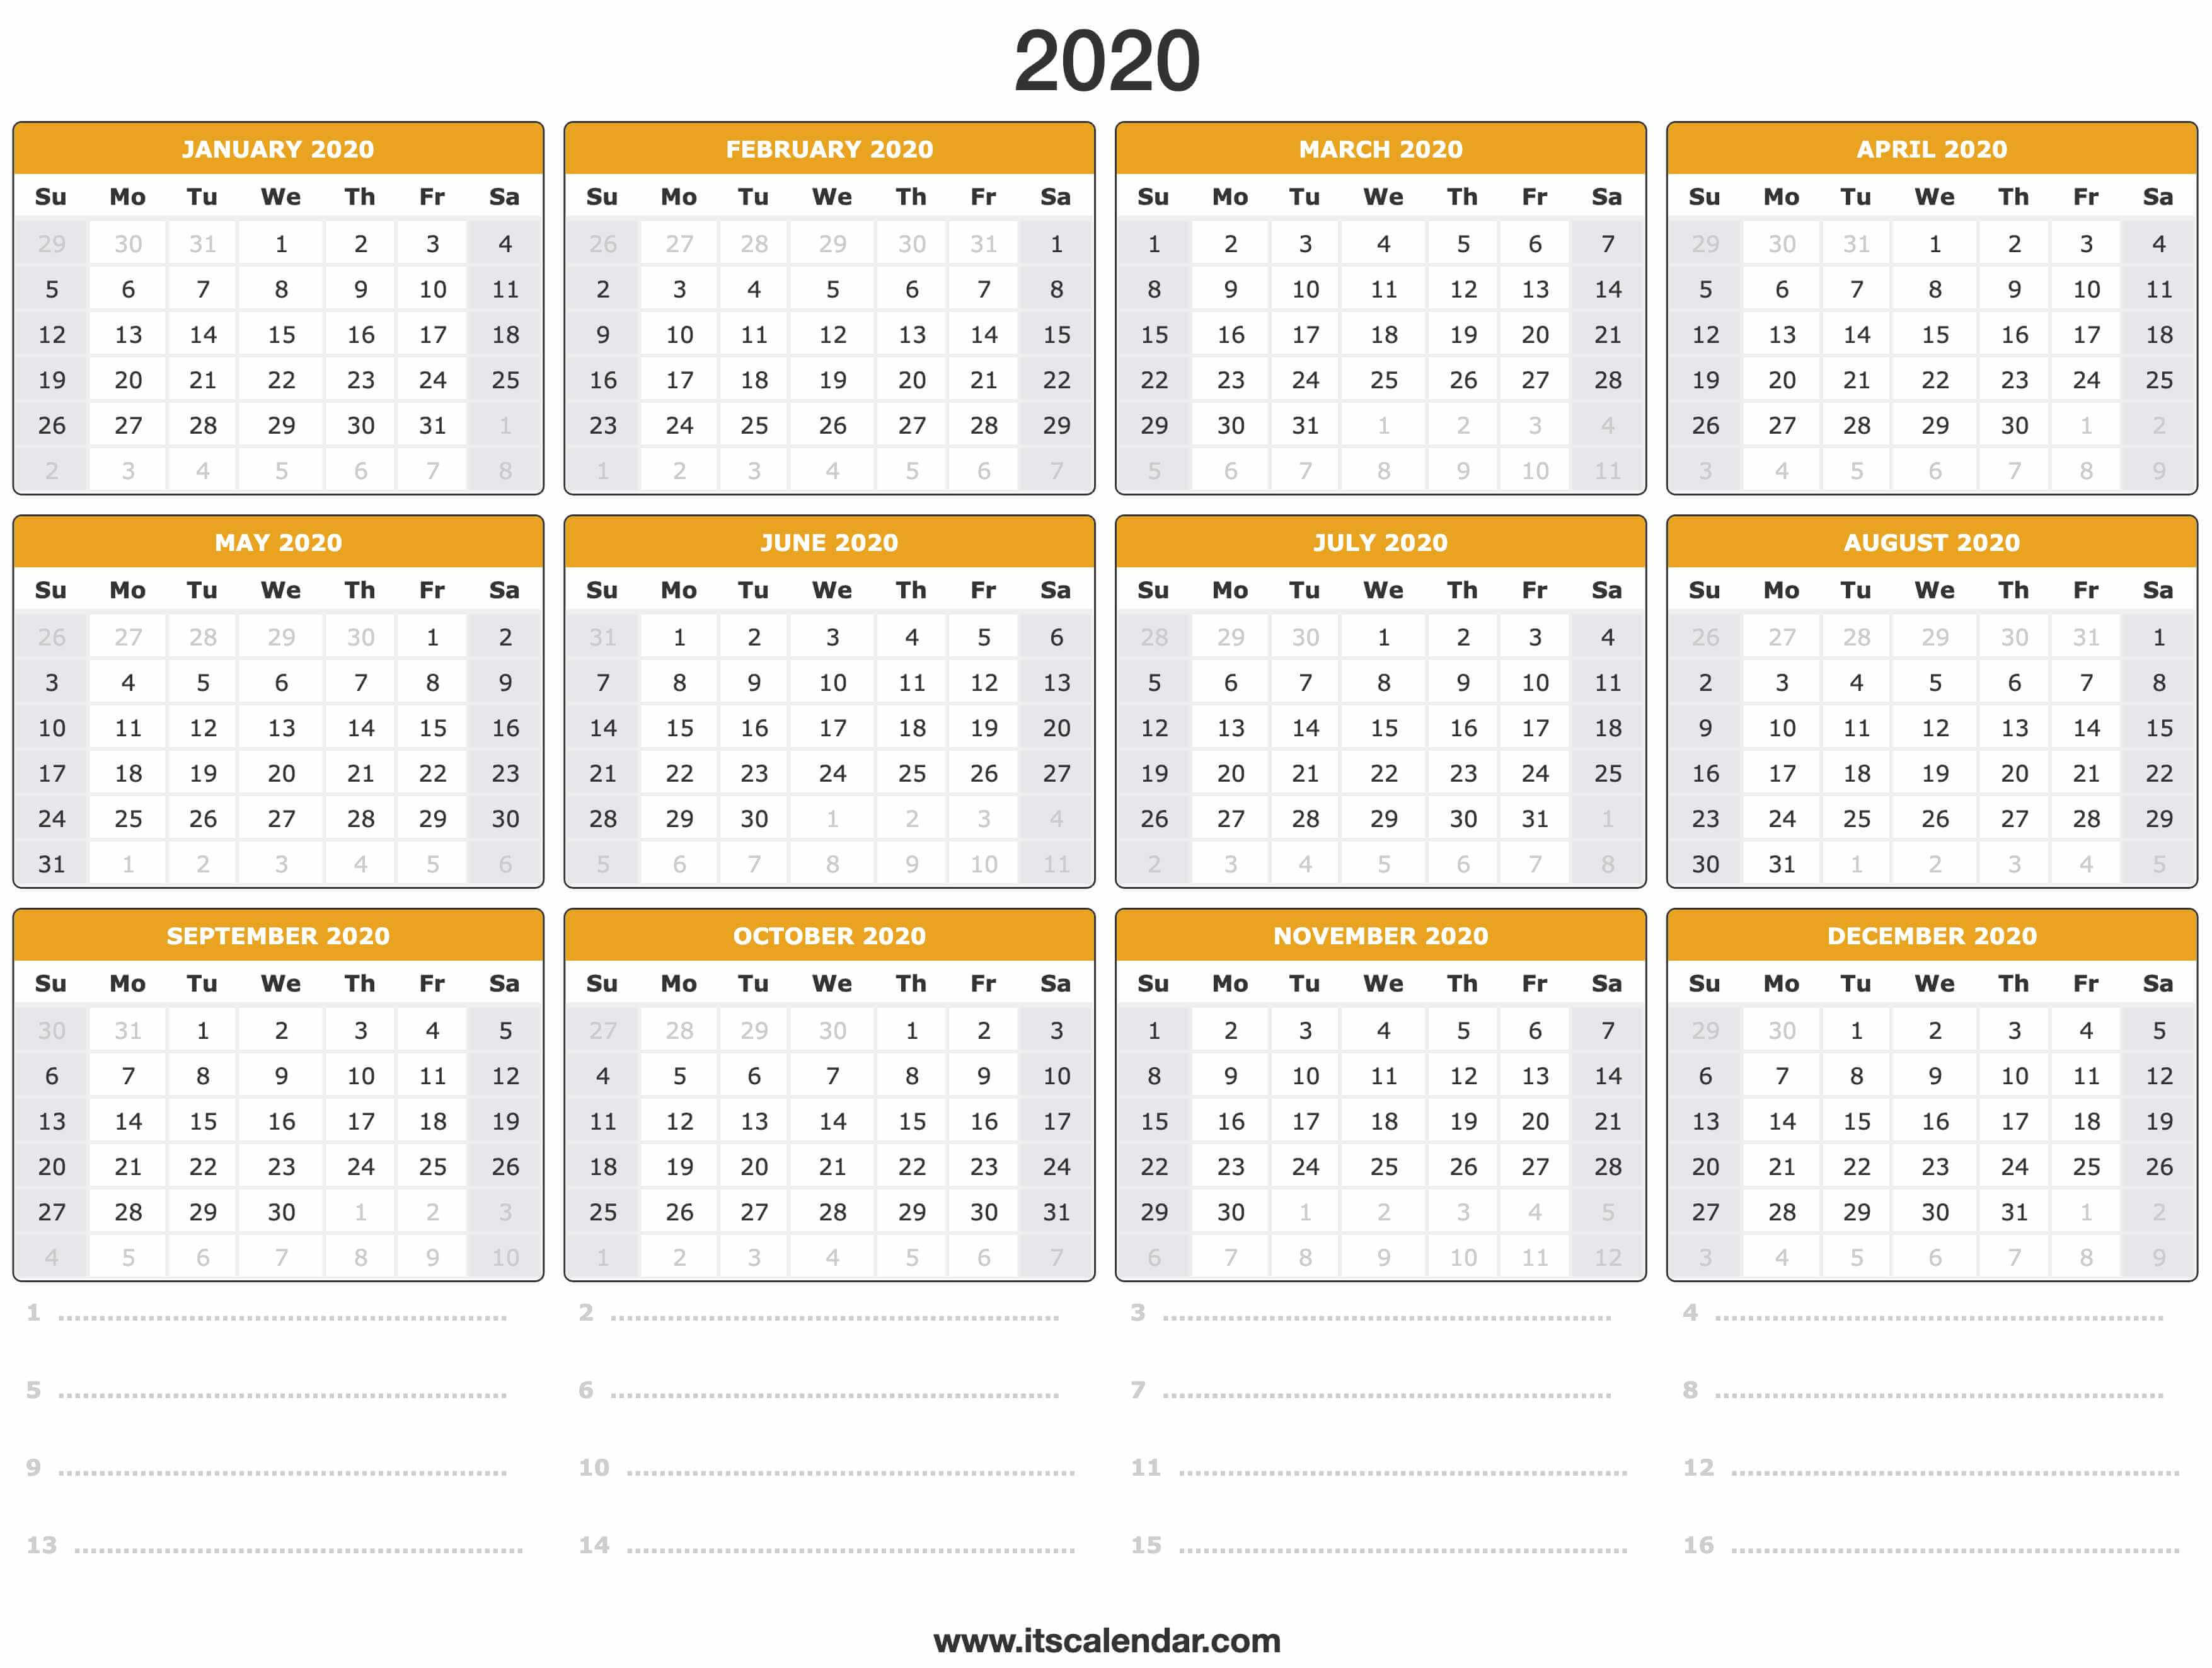 It's just a picture of Nerdy Printable Calendars for 2020